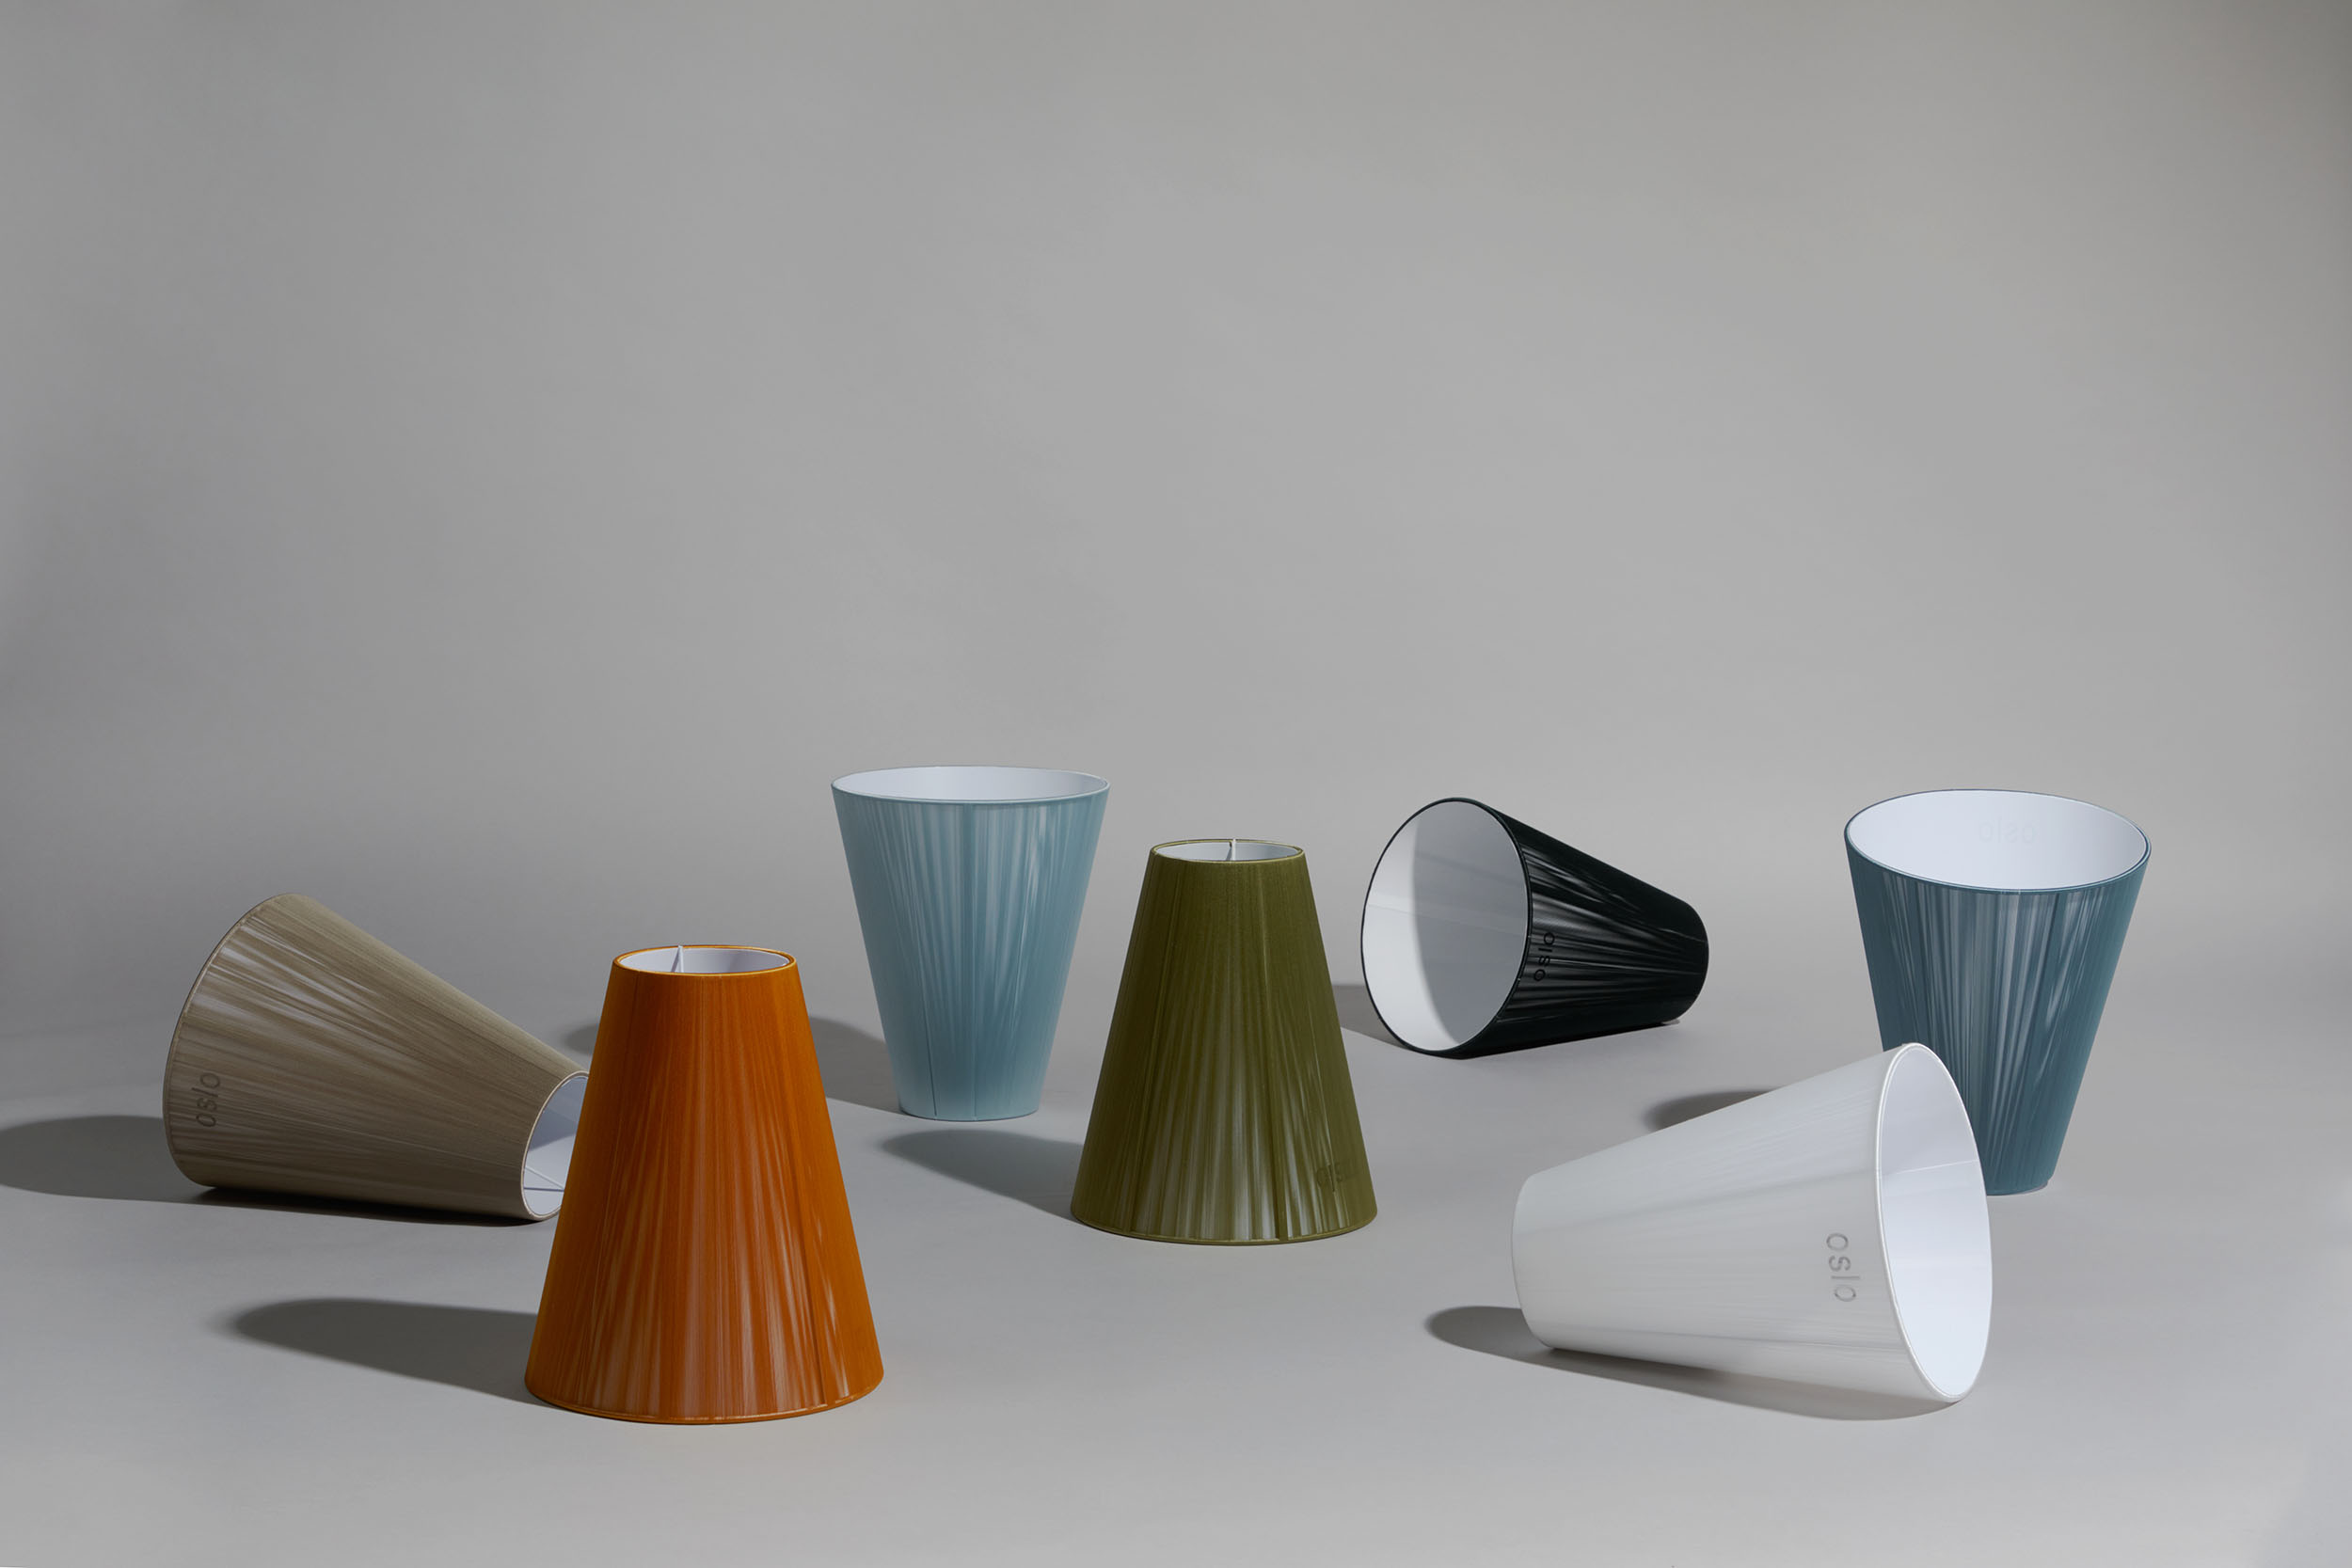 Oslo_Wood_lamp_shades_all-colours_Northern_Low-res